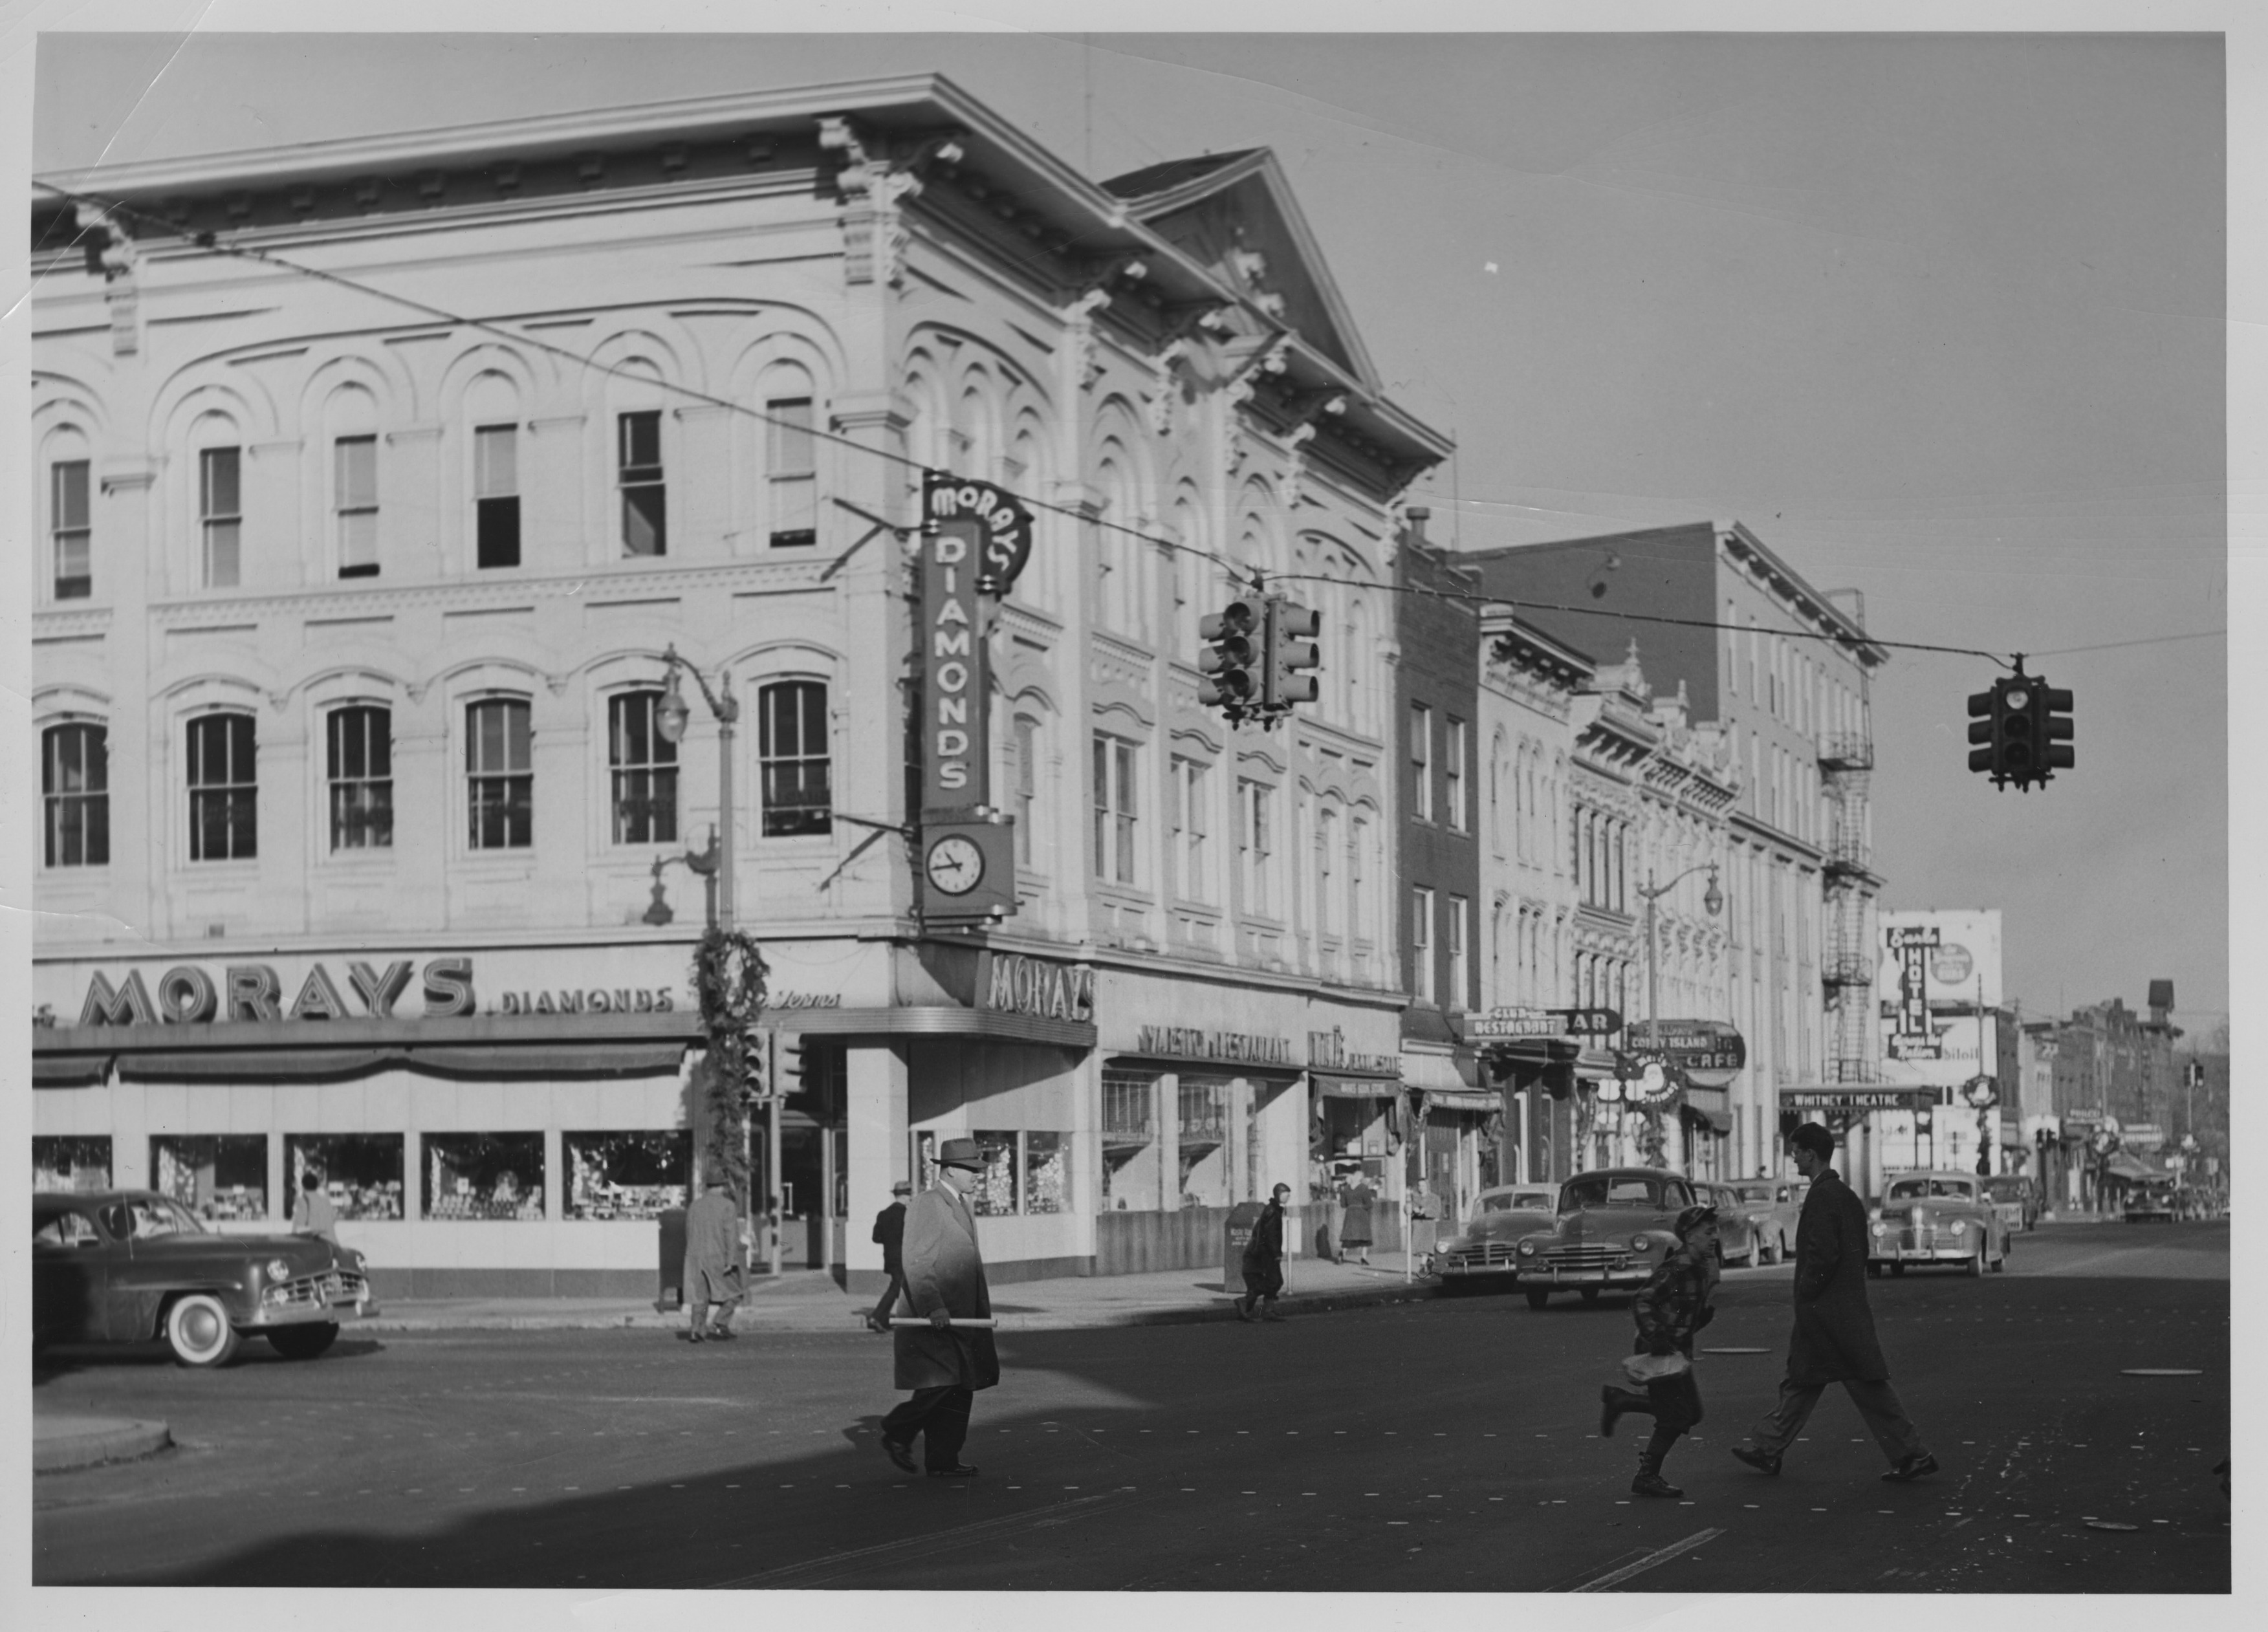 Northwest corner Main and Huron Streets, 1950 image